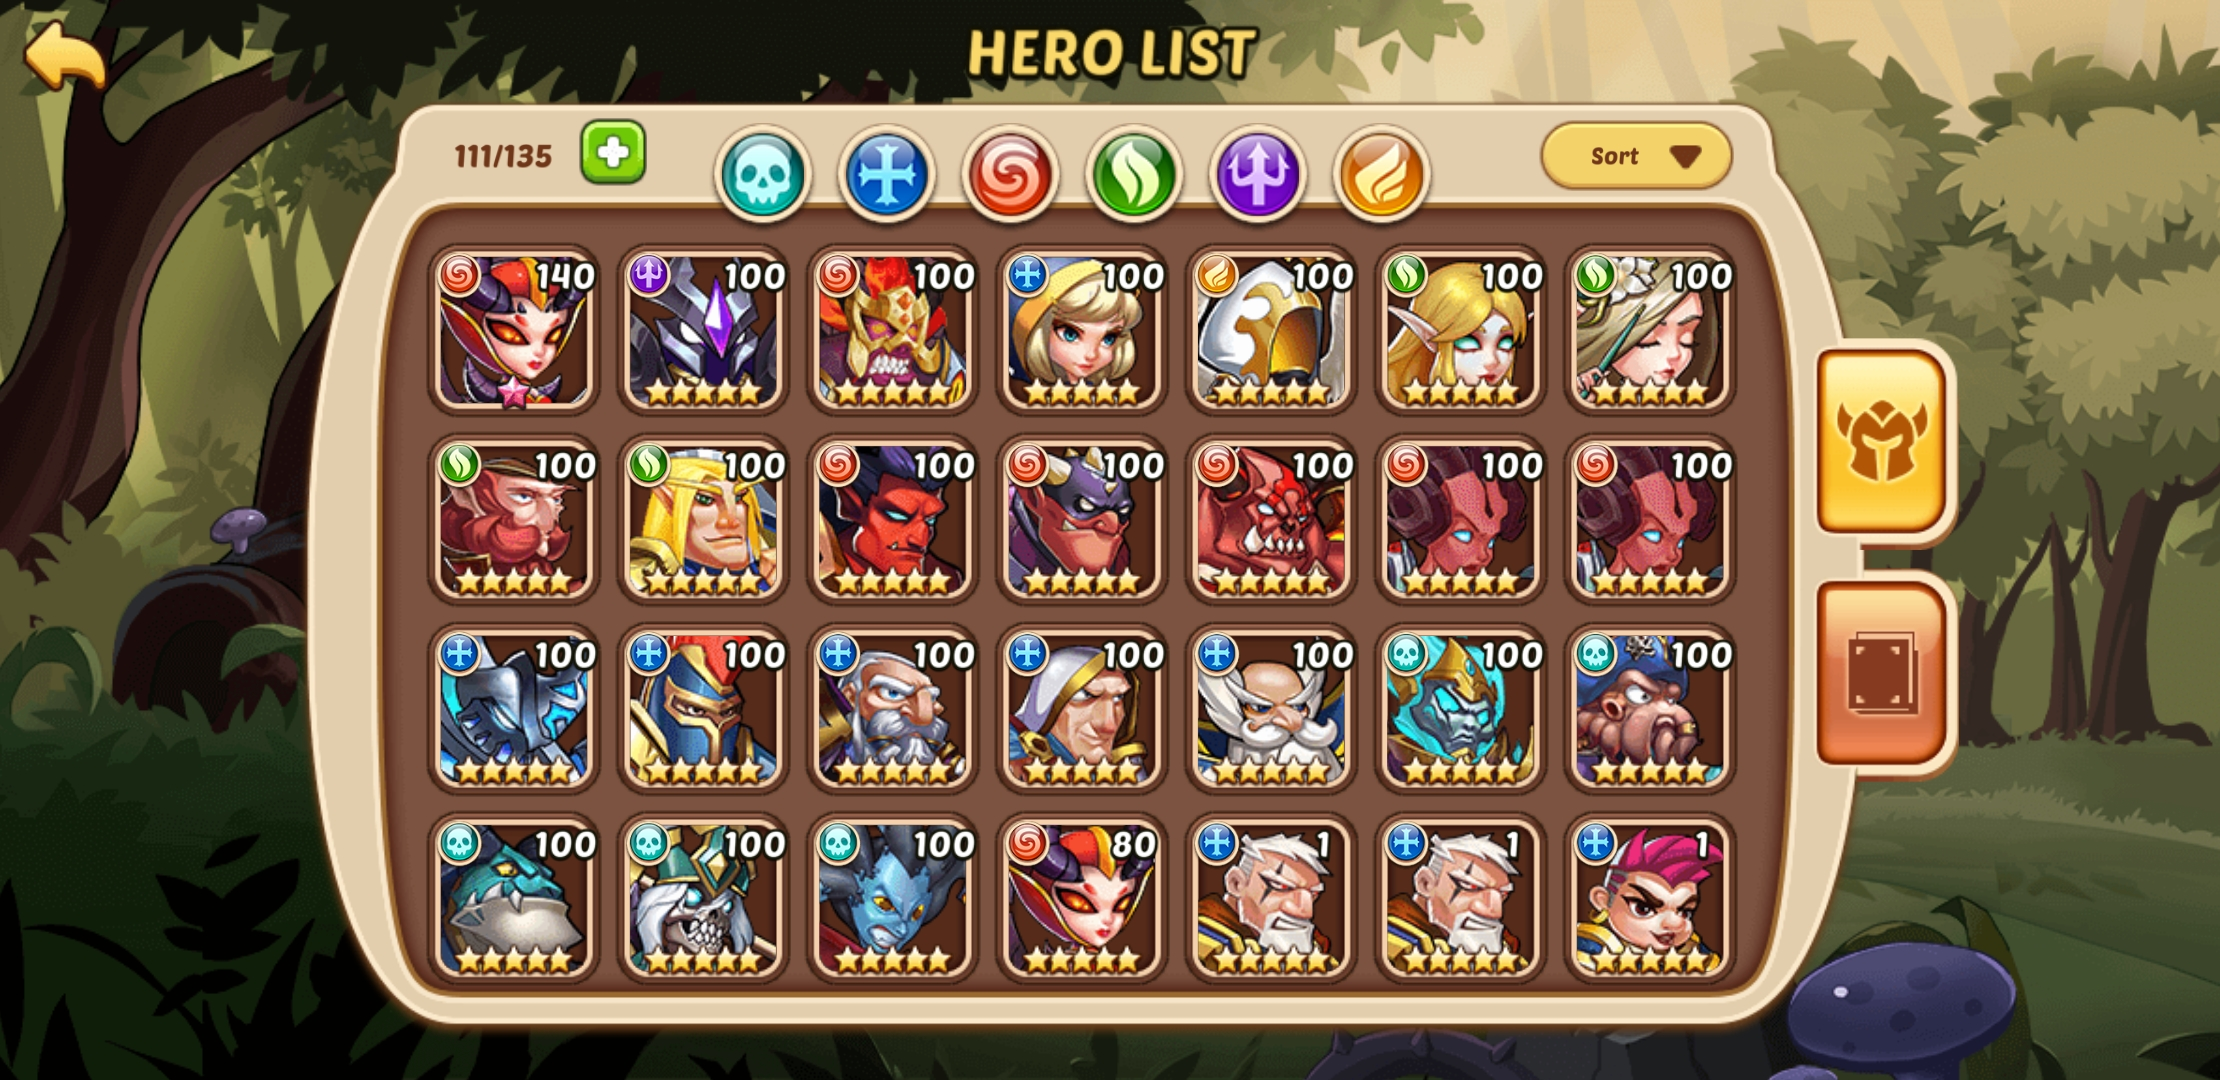 Can someone Help me Ford an Gold pvp Team and an great pve Team with this heroes?!